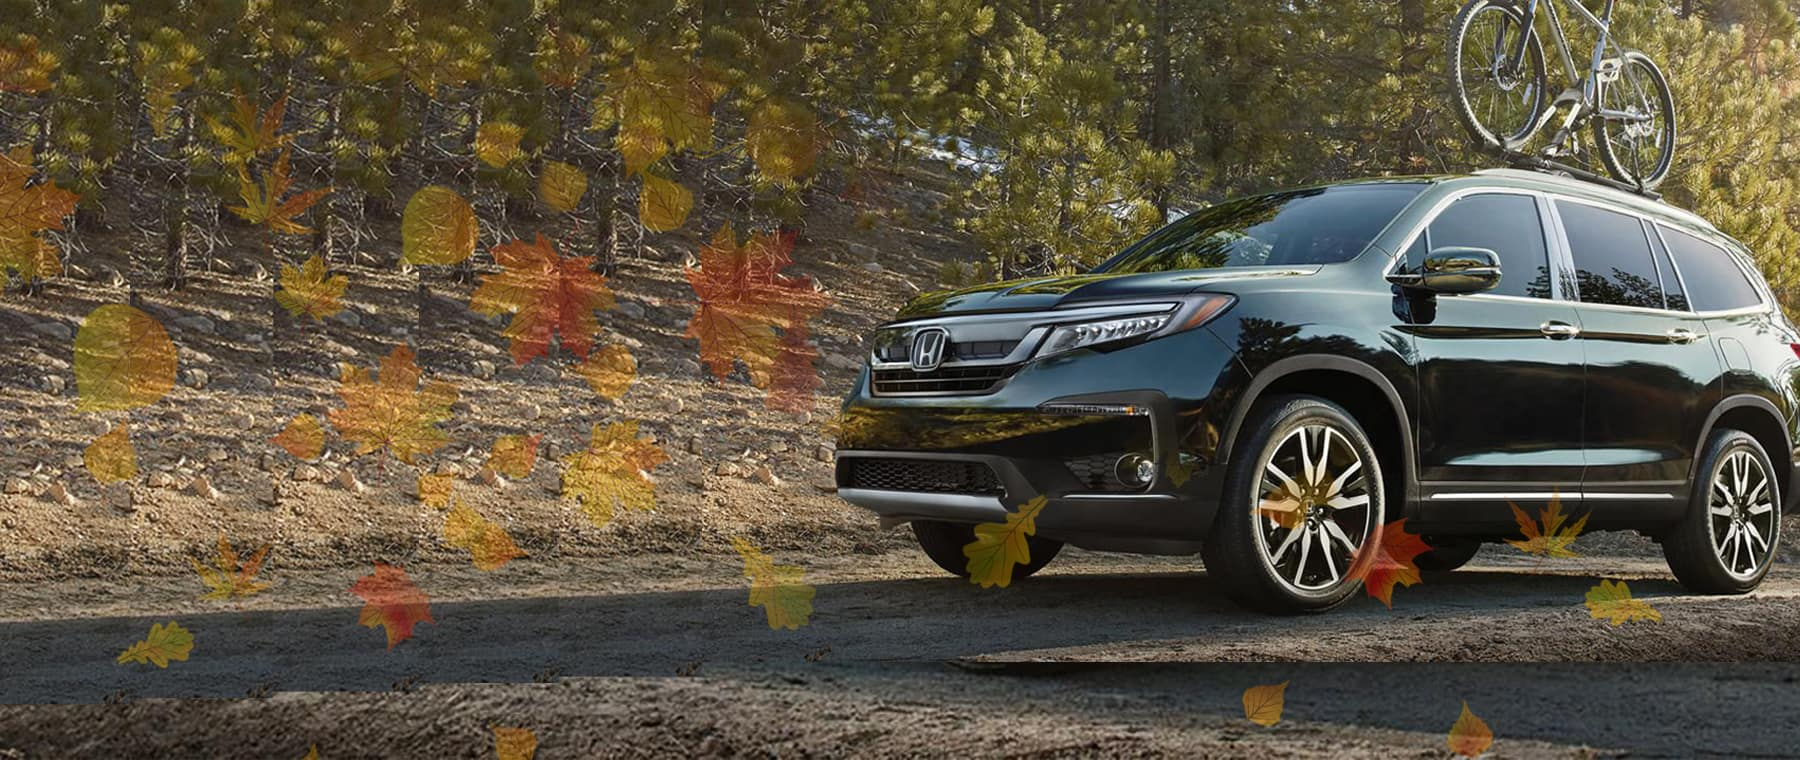 Click Here To FALL Into Major Savings At Hillside Honda U003e